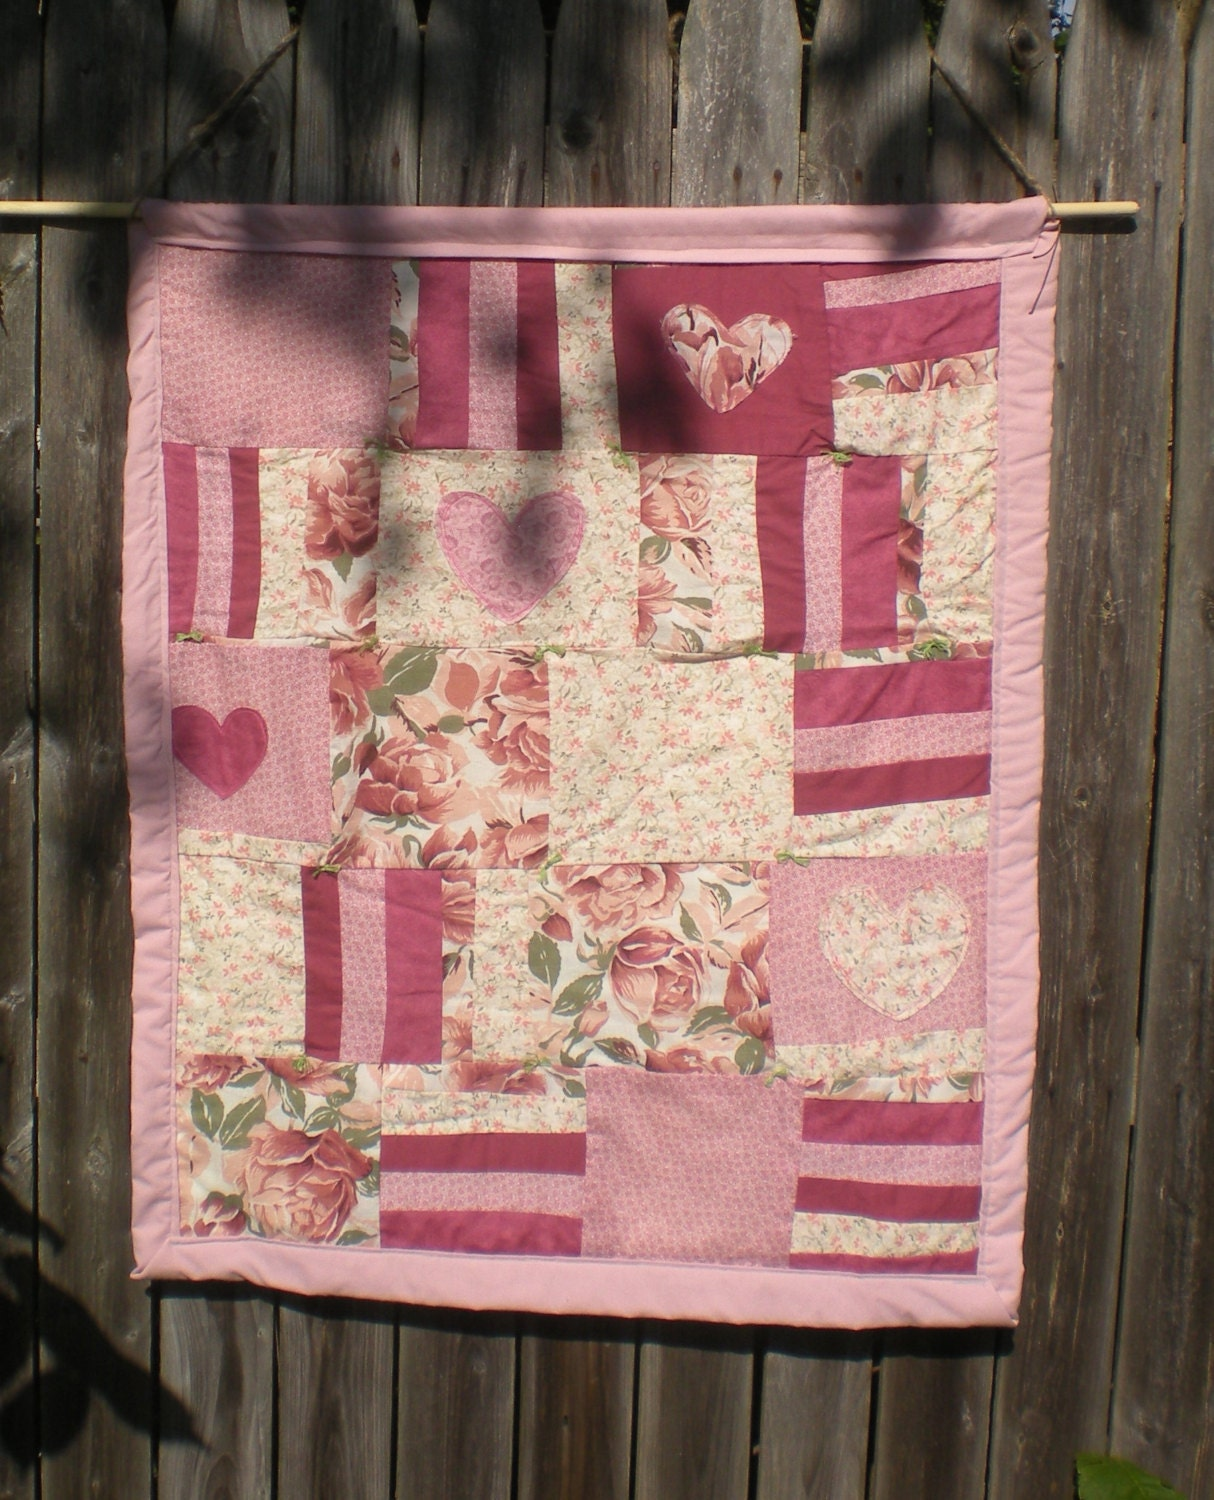 Quilting Room Wall Decor : Pink hearts folk art crib quilt nursery decor wall hanging